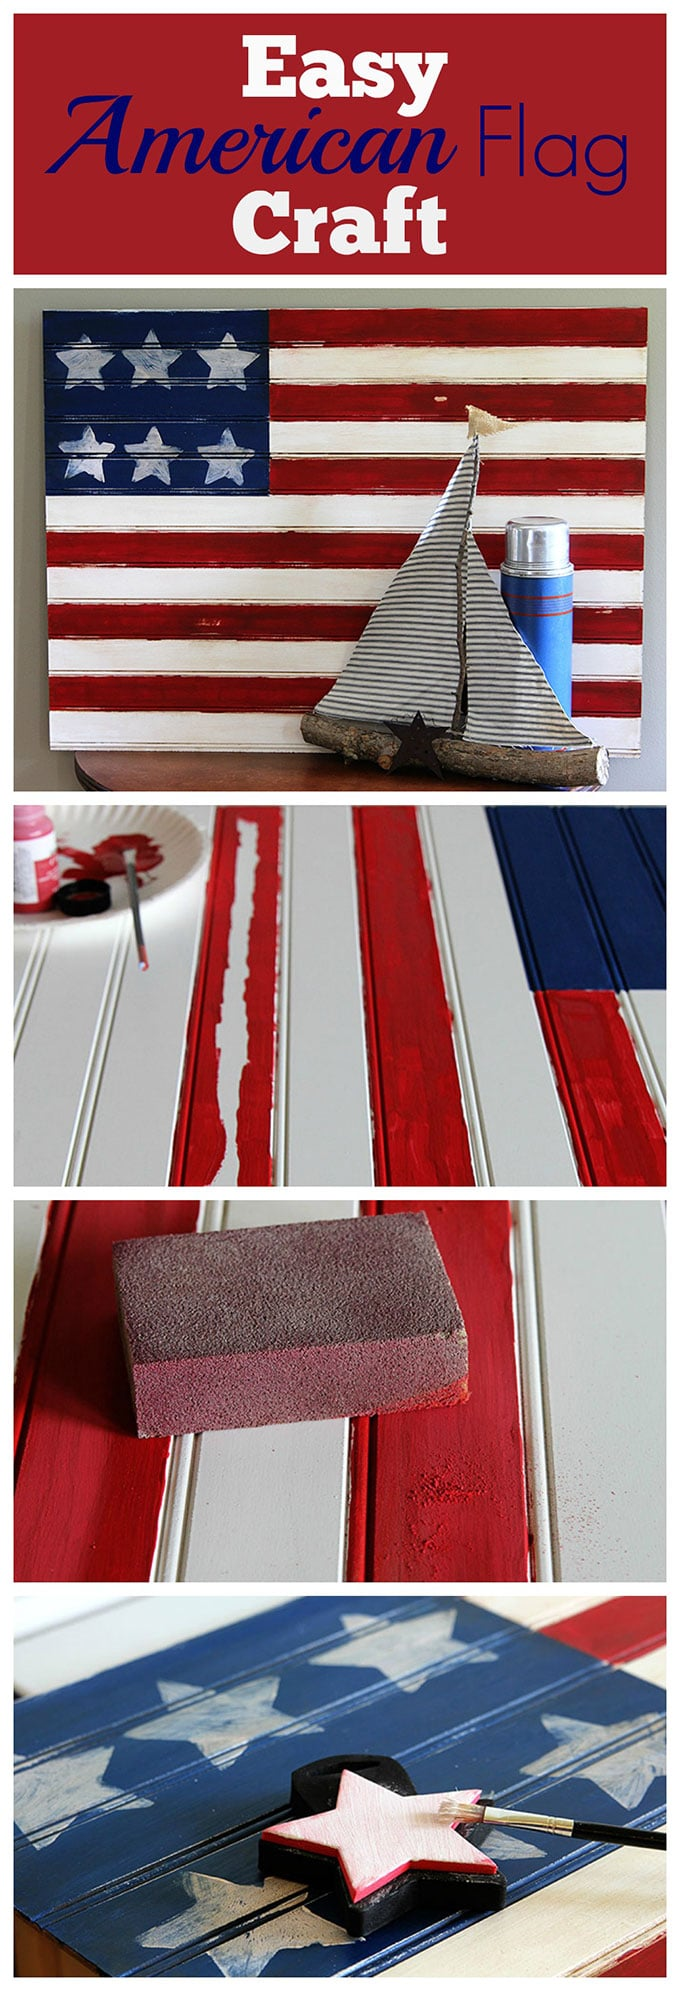 This American flag craft project is super cute and EASY to make . A quick patriotic DIY project for your 4th of July home decor. Did I mention it's easy?